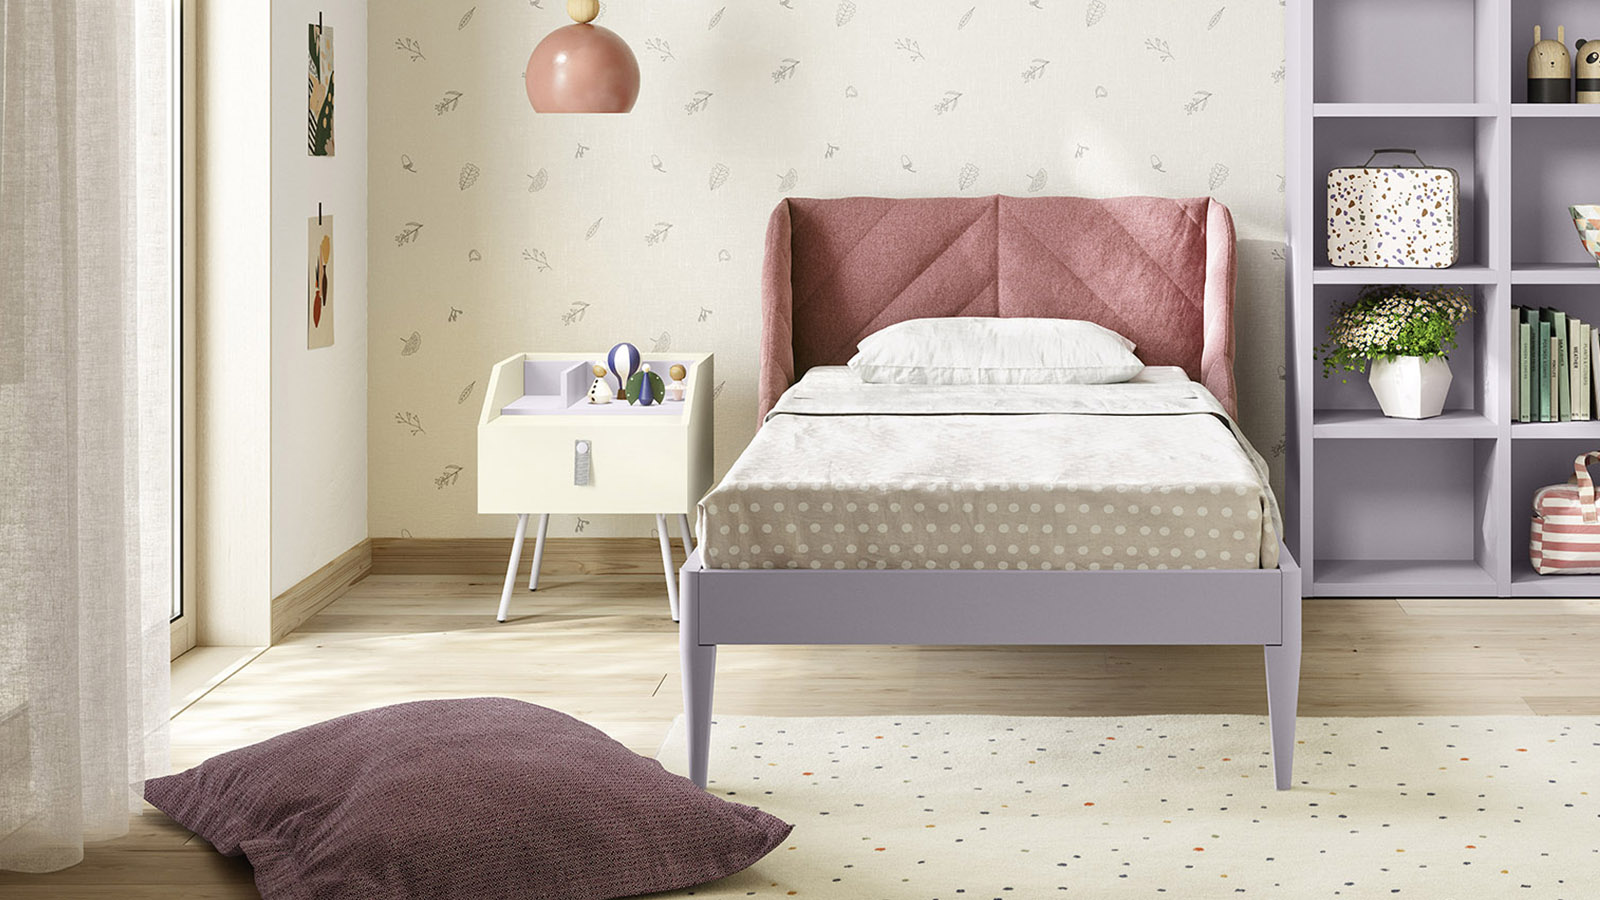 Bedside Tables For Kids And Teens Bedrooms Nidi